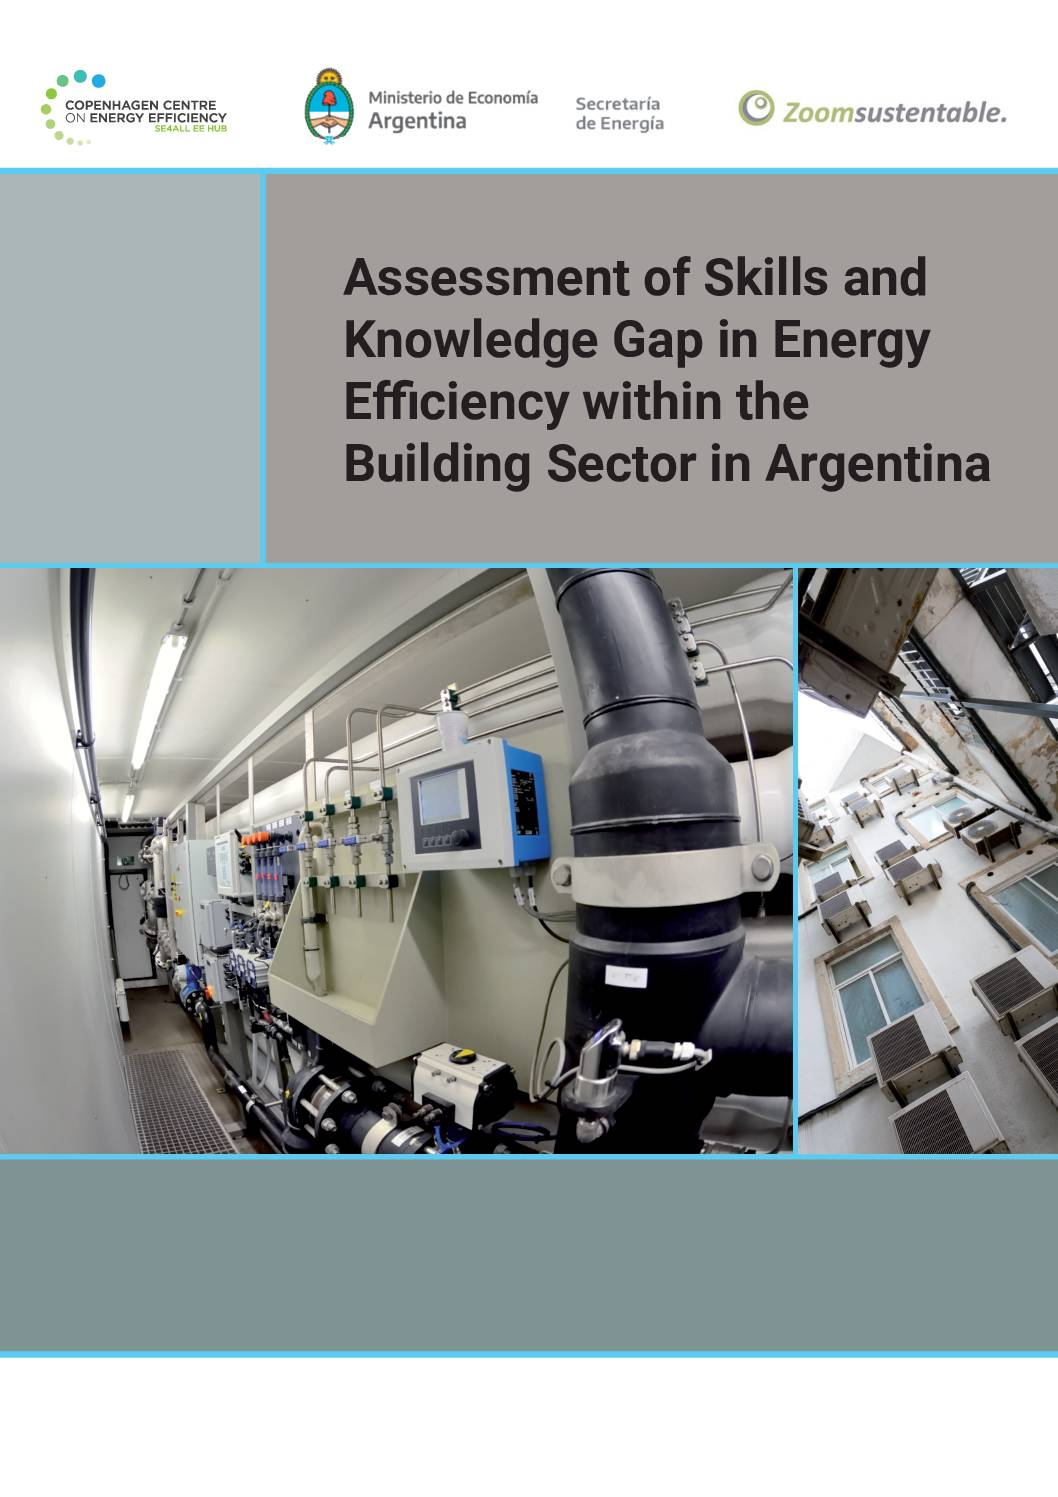 Assessment of Skills and Knowledge Gap in Energy Efficiency within the Building Sector in Argentina